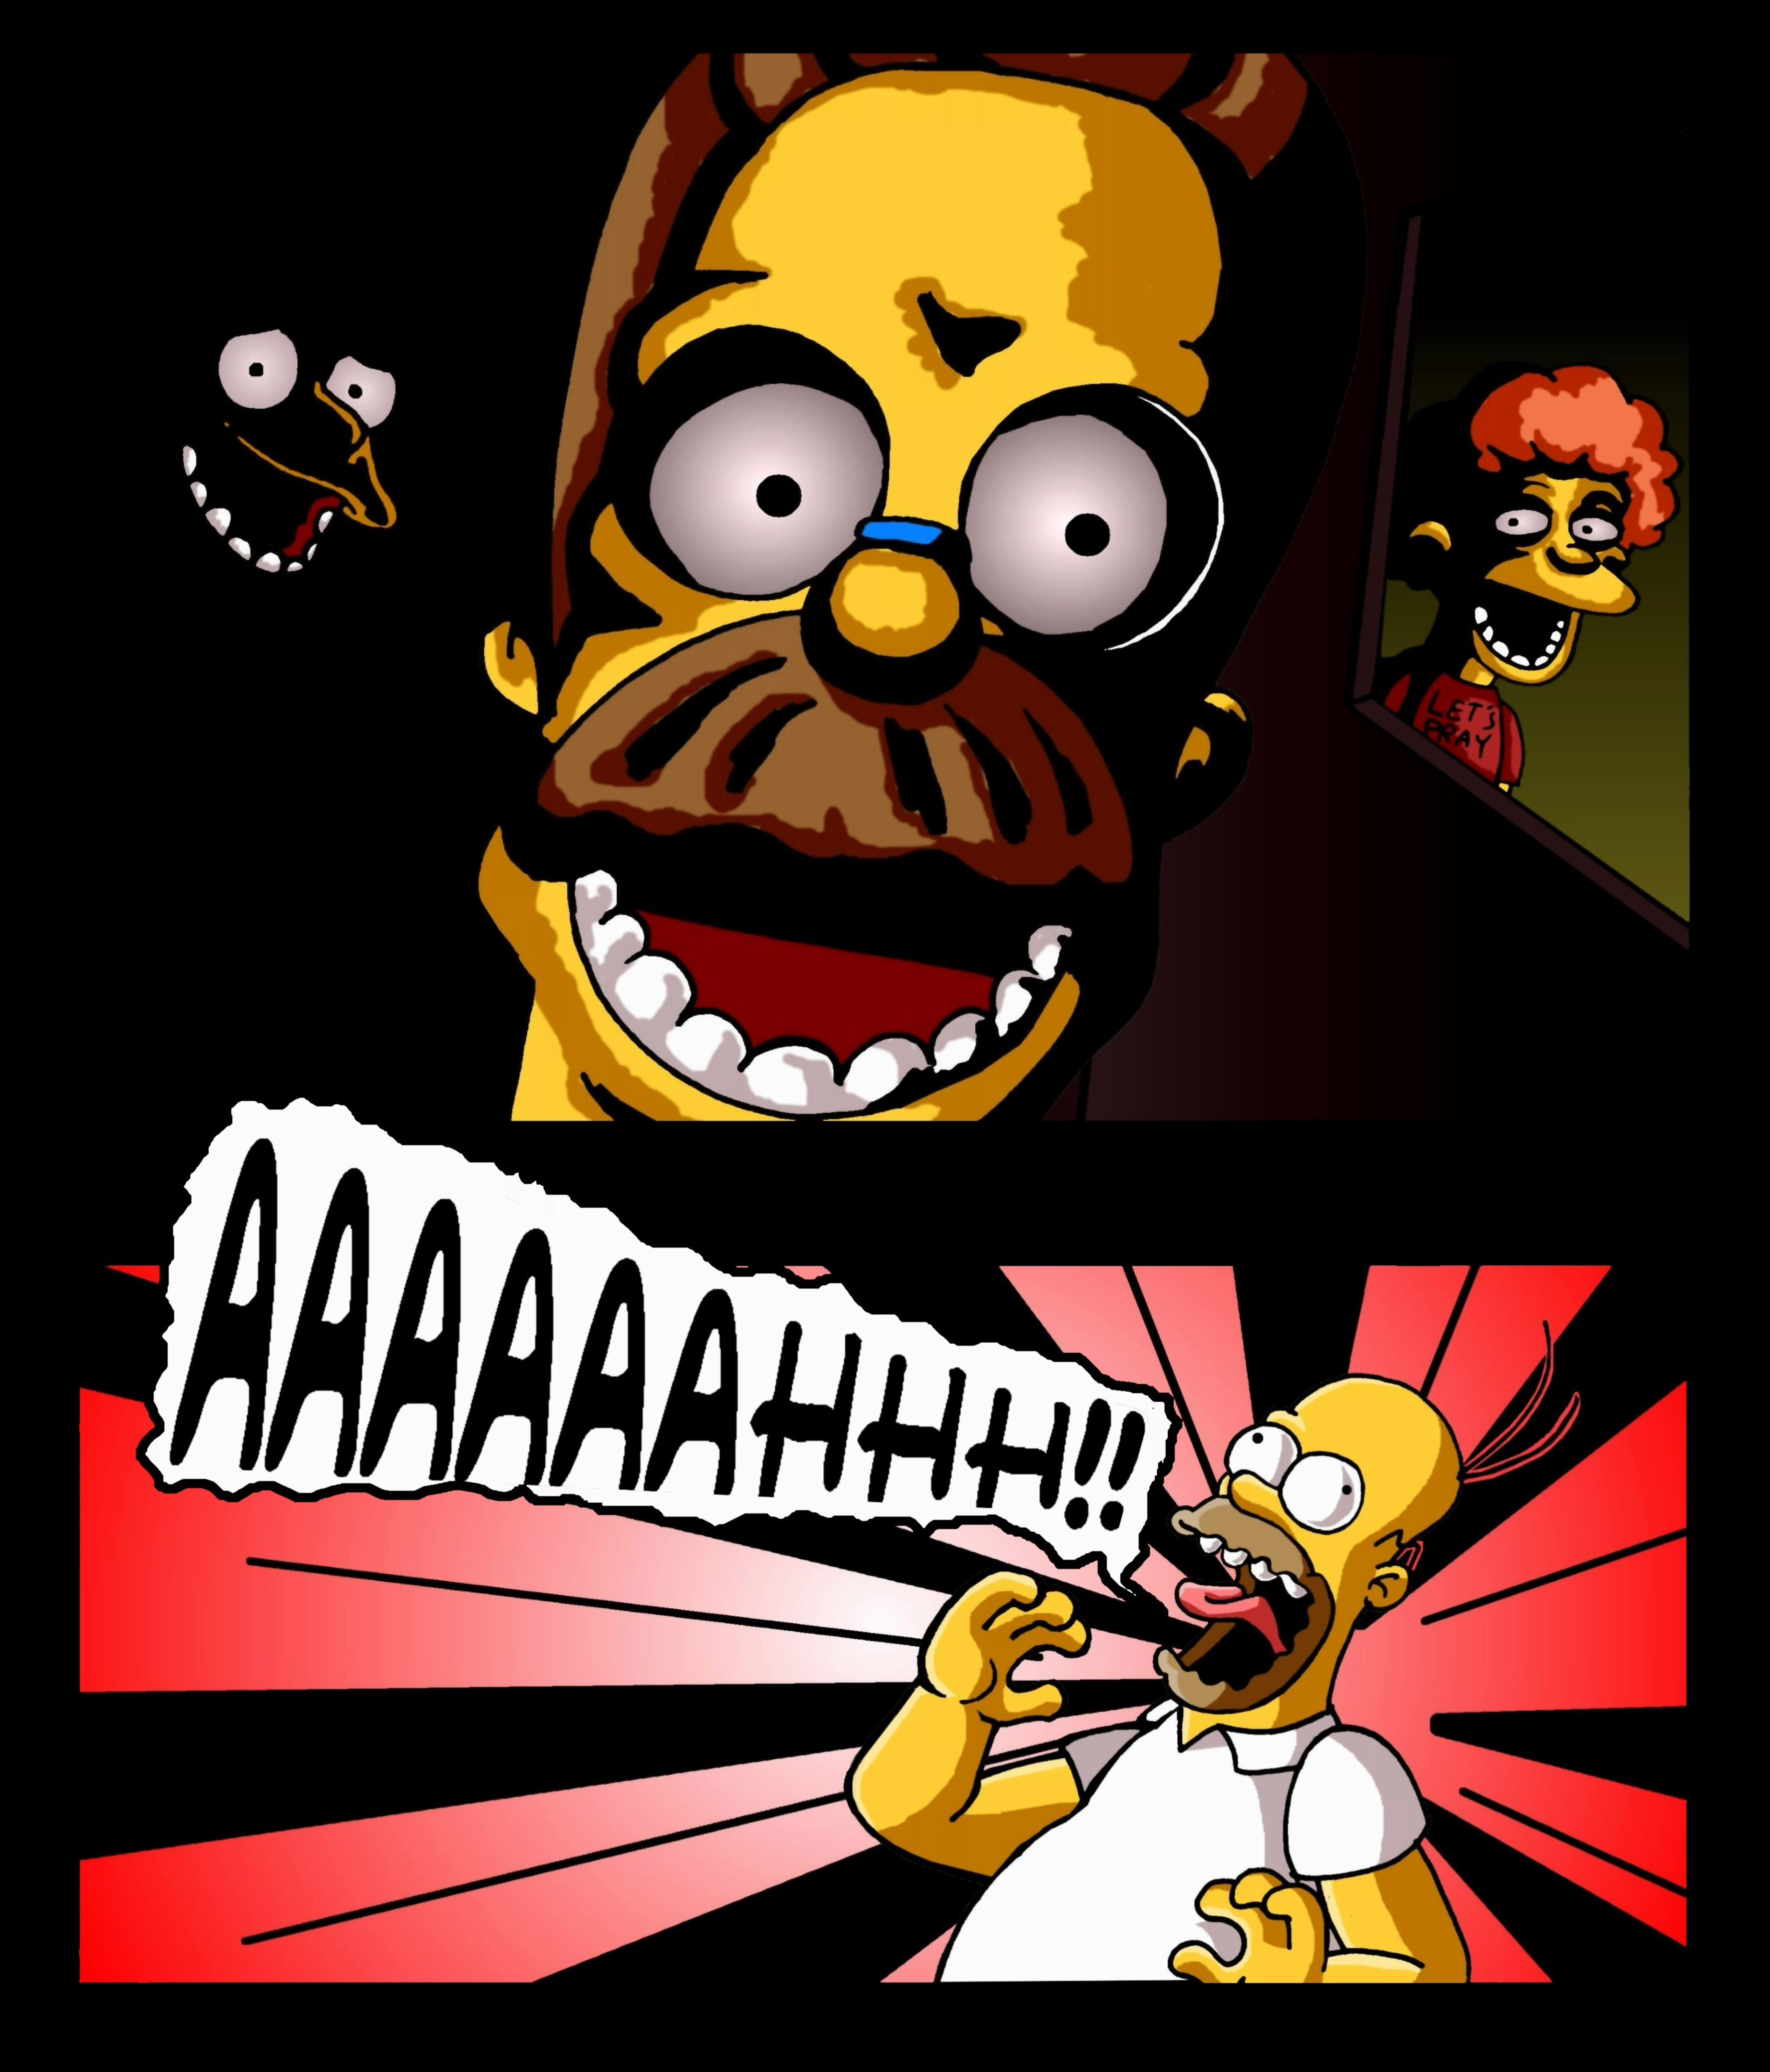 Scary Five Nights At Freddy's Memes Stupid Scary Flanders Five Nights At Freddy S Know Your Meme stupid scary flanders five nights at